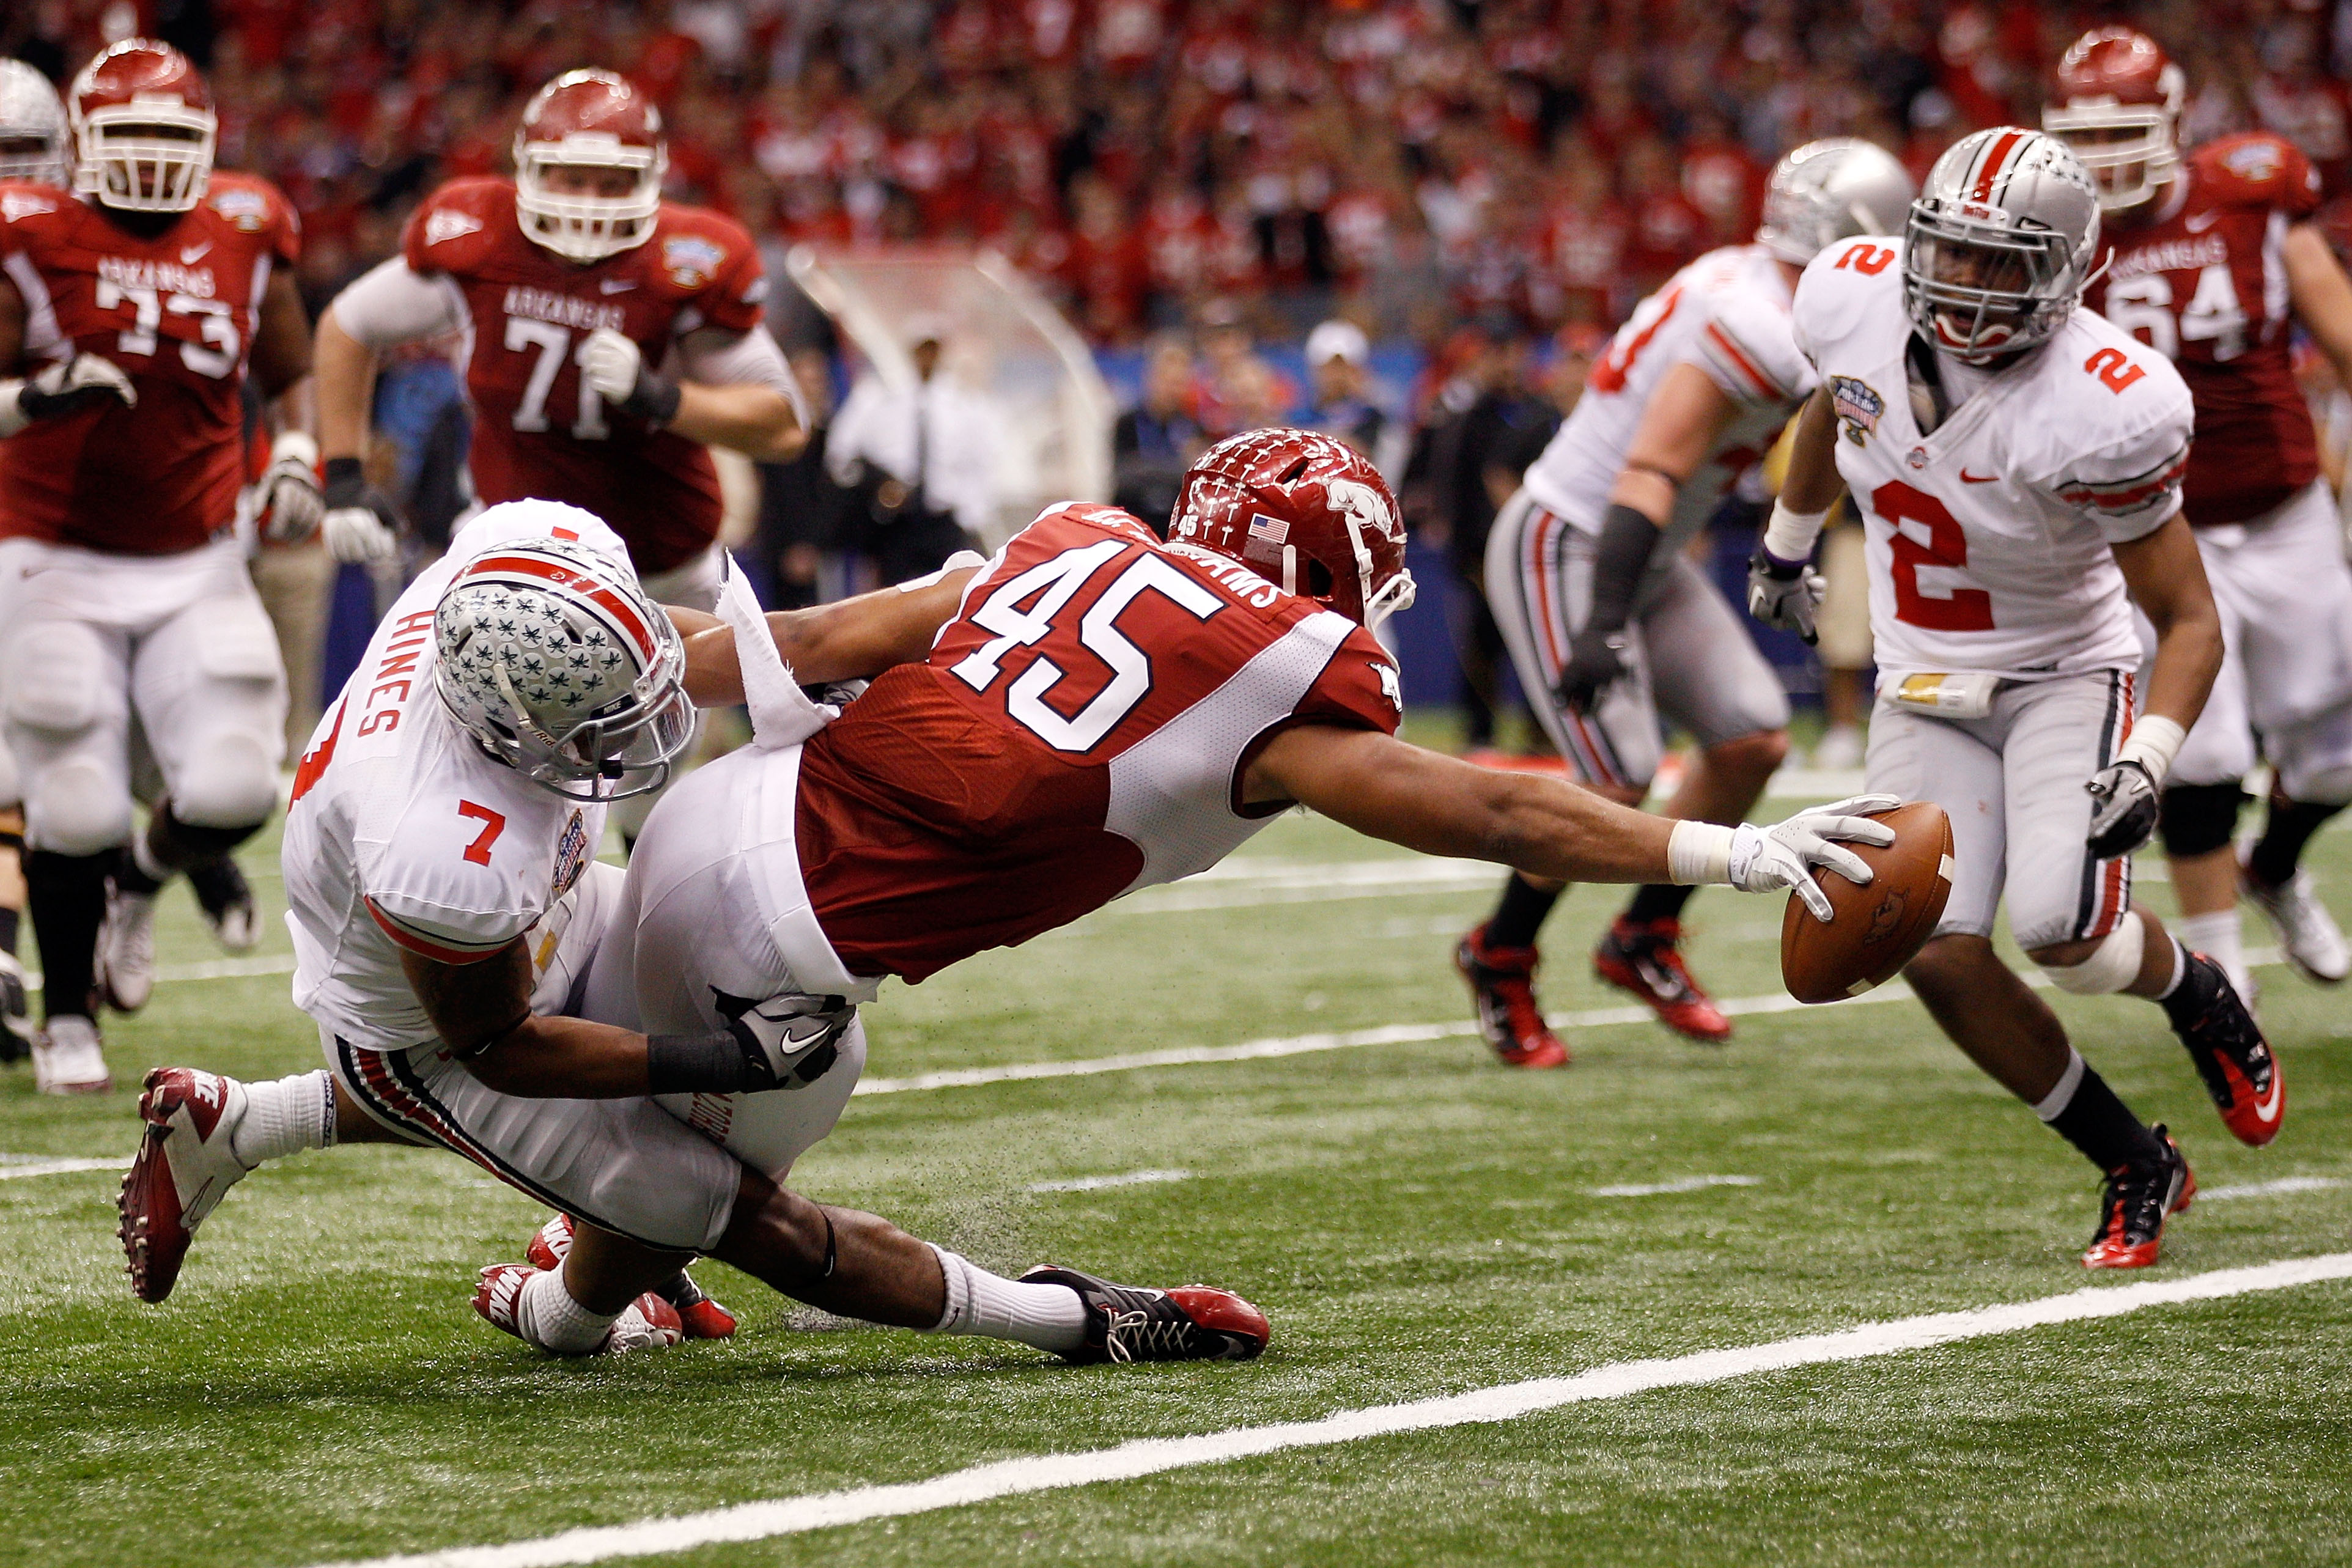 The unheralded, potential key to a powerful run offense in 2011 and beyond?